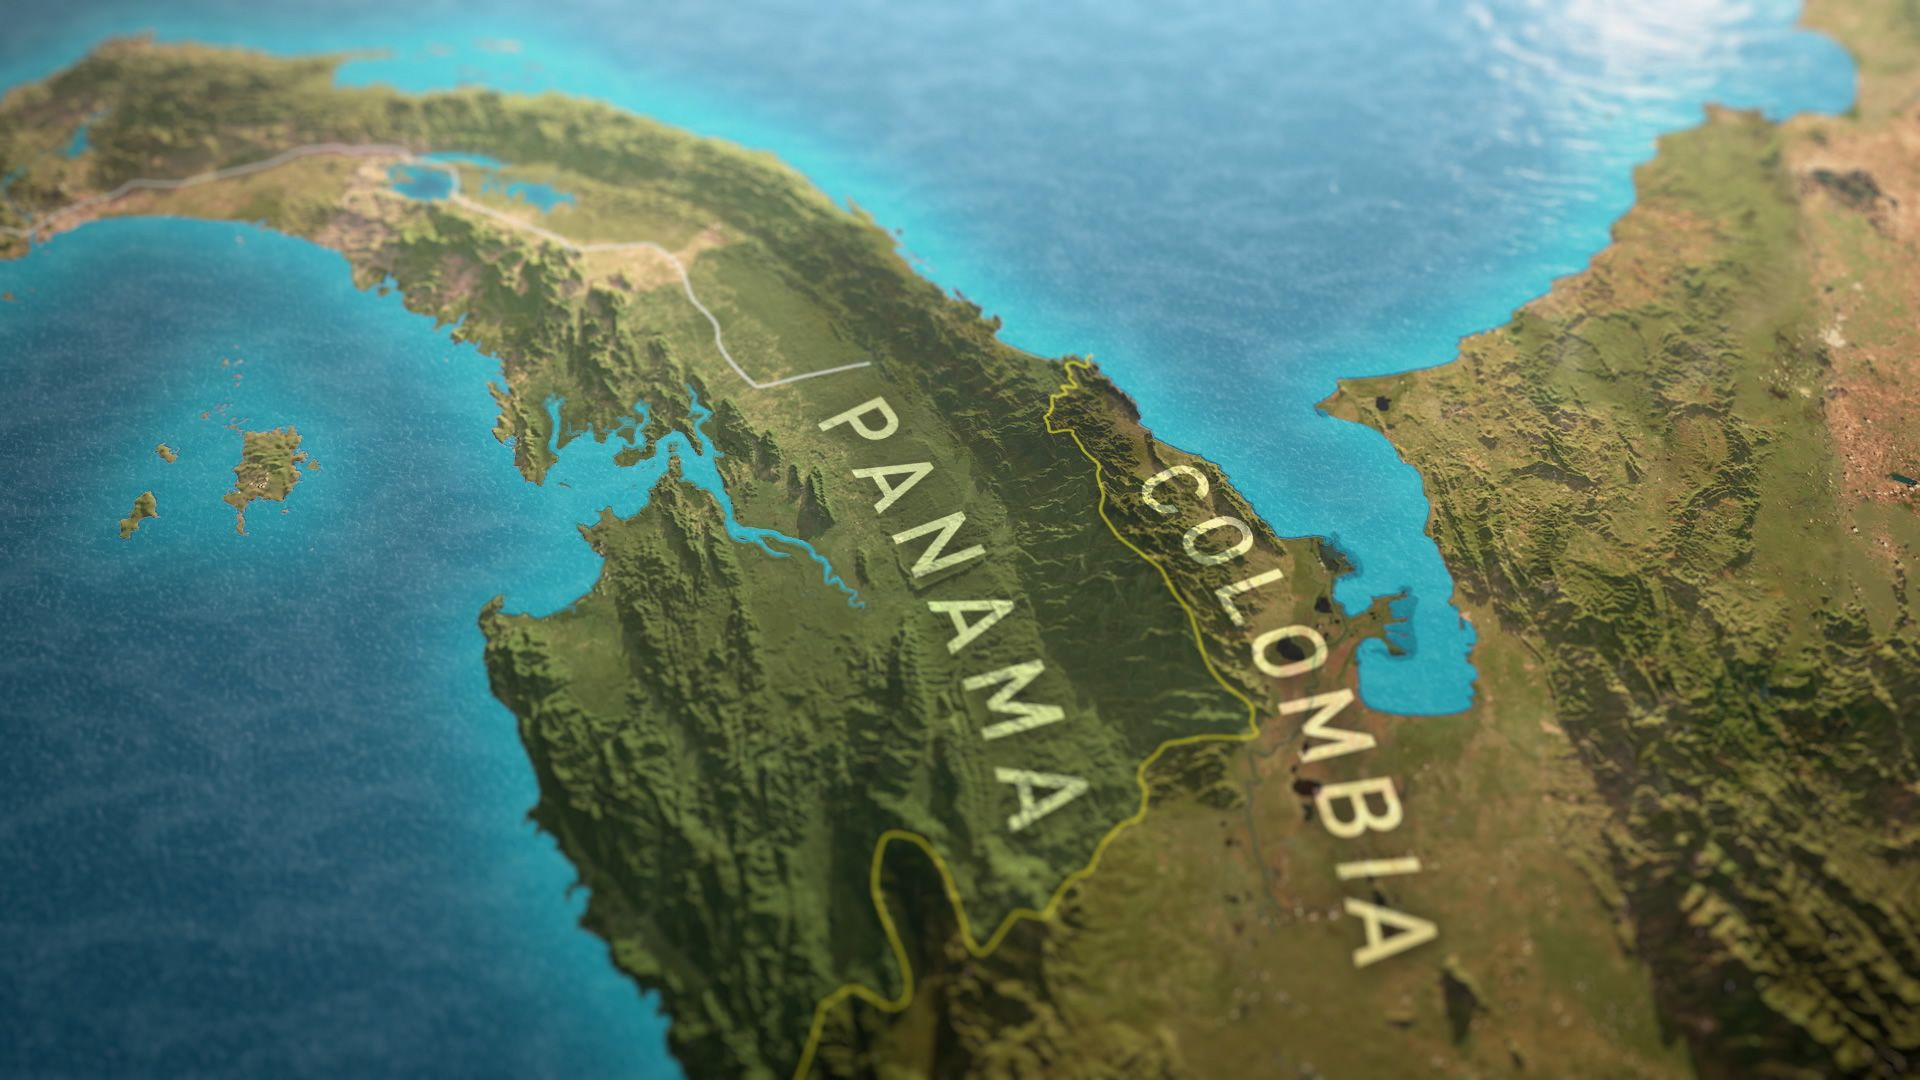 Still of Panama and Colombia from map